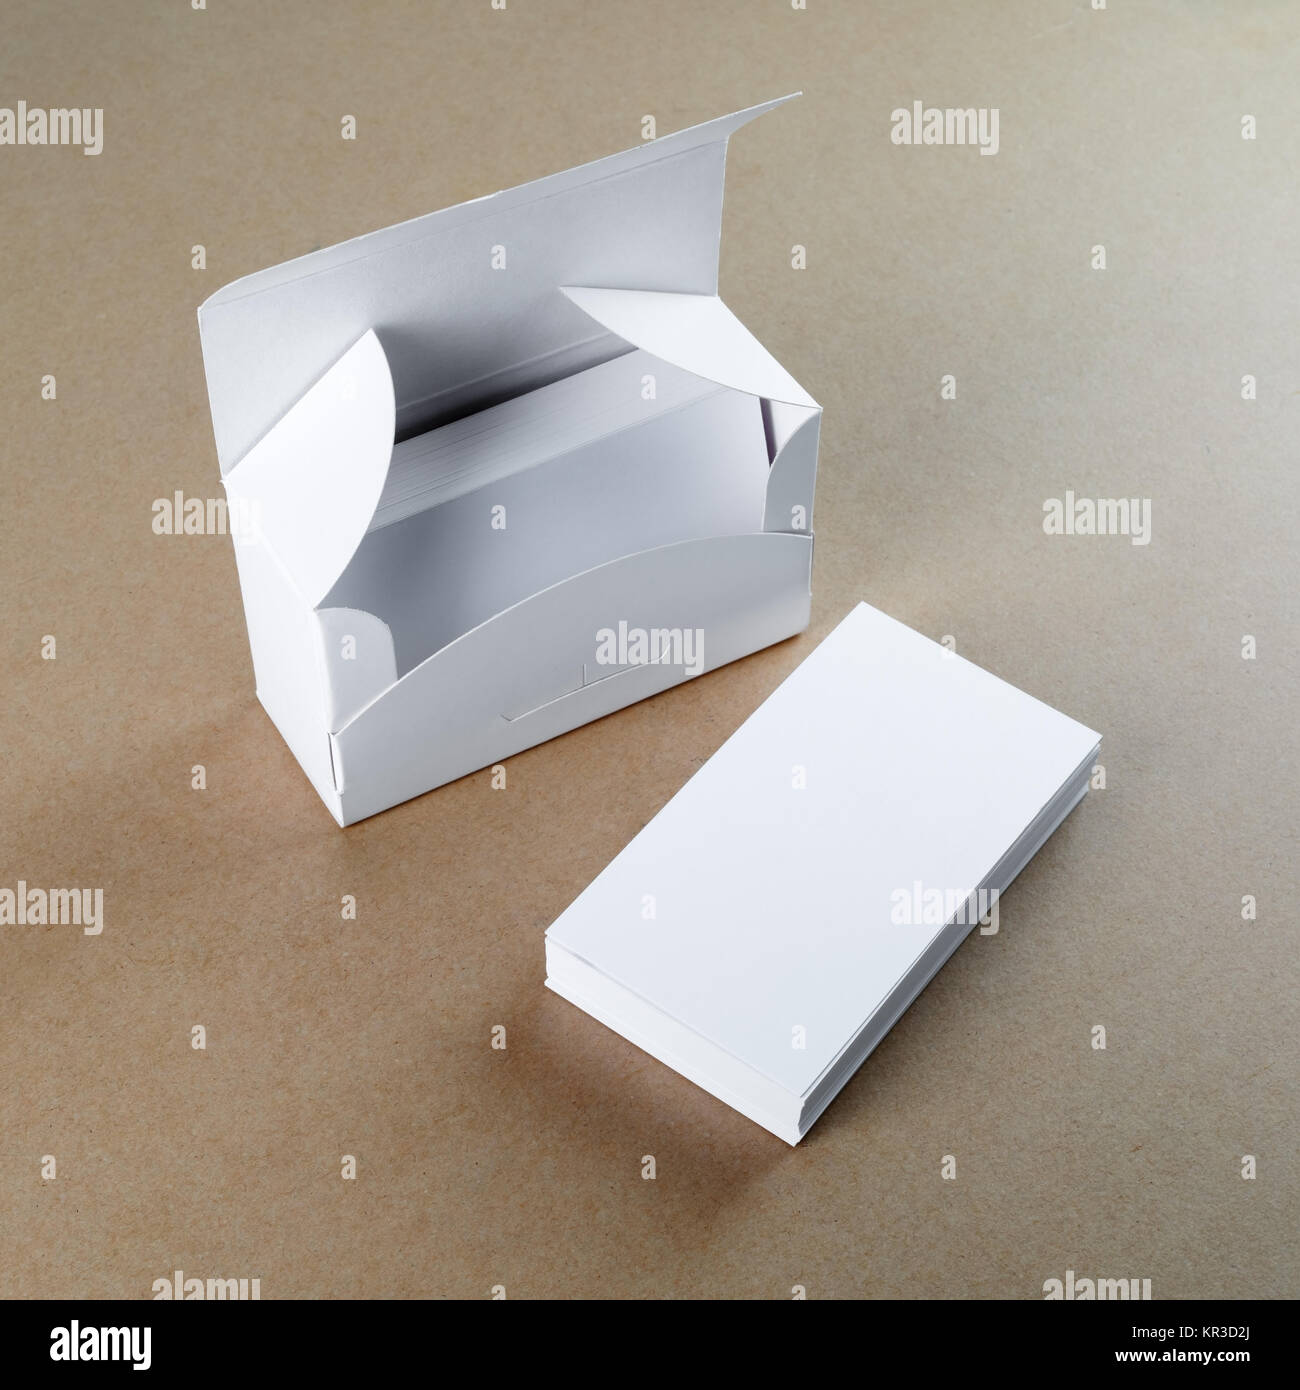 Box with blank business cards Stock Photo: 169106522 - Alamy